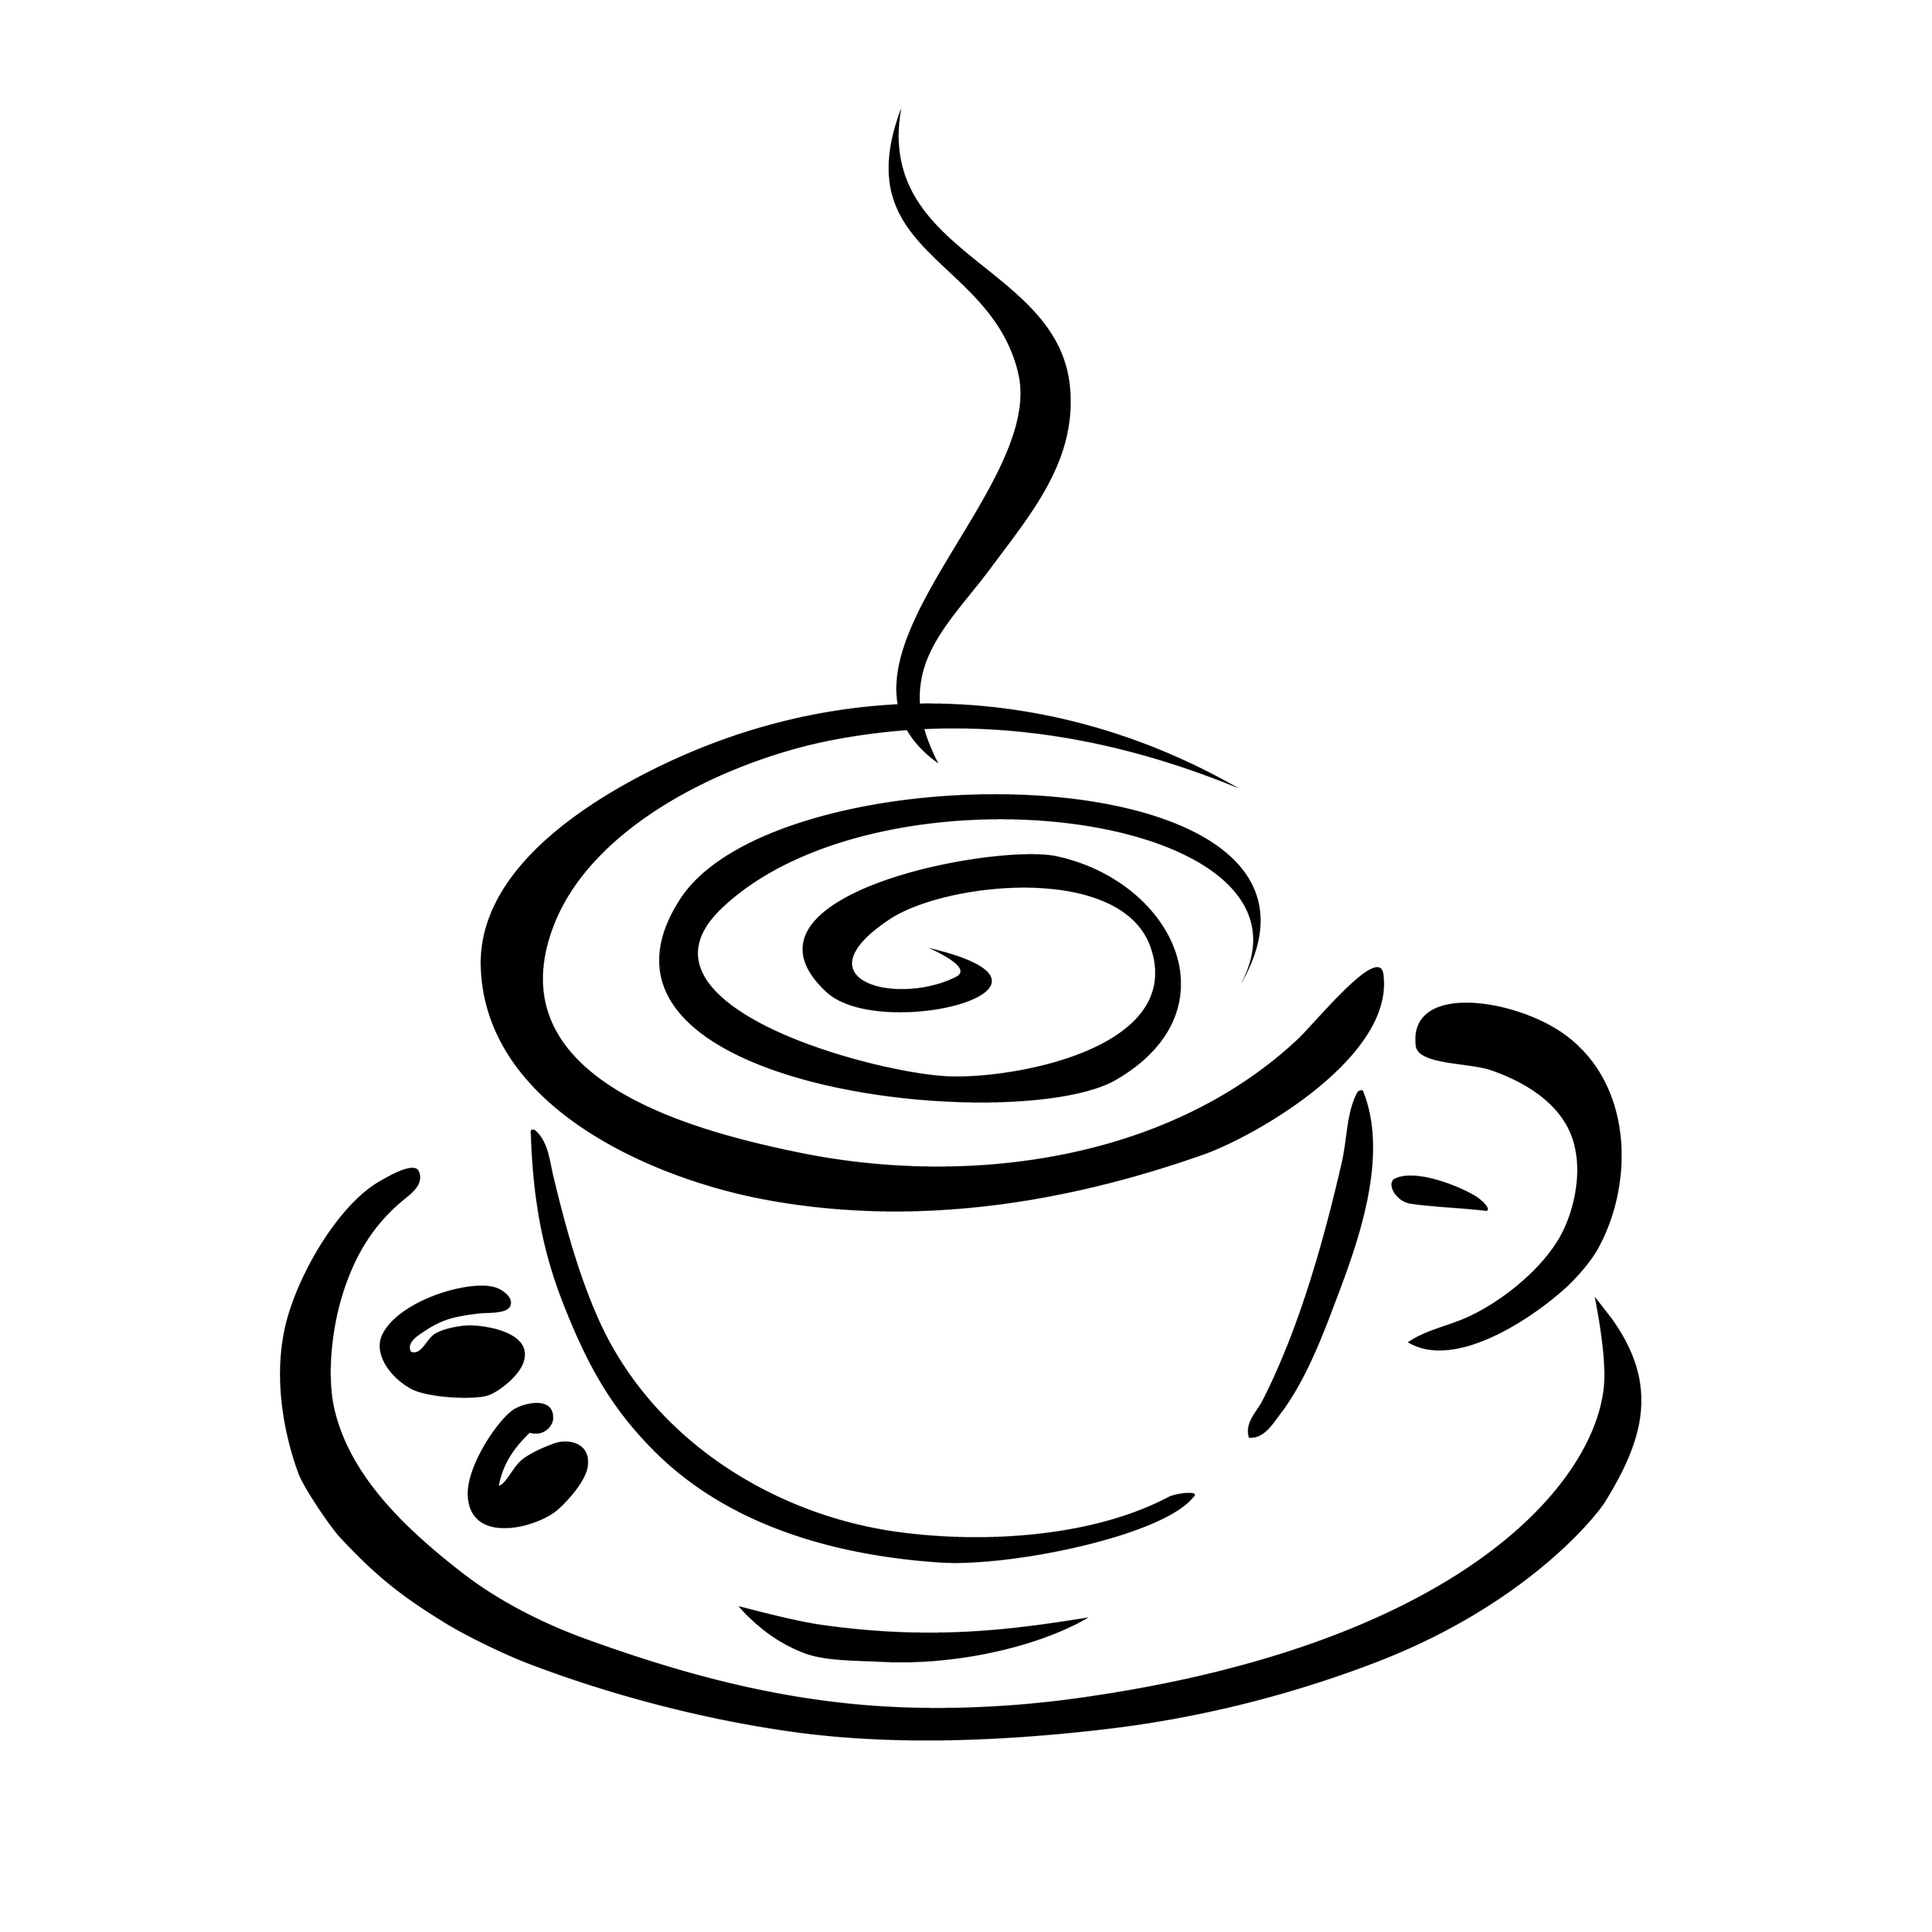 Cafe et baguette clipart graphic royalty free library Free French Coffee Cliparts, Download Free Clip Art, Free Clip Art ... graphic royalty free library